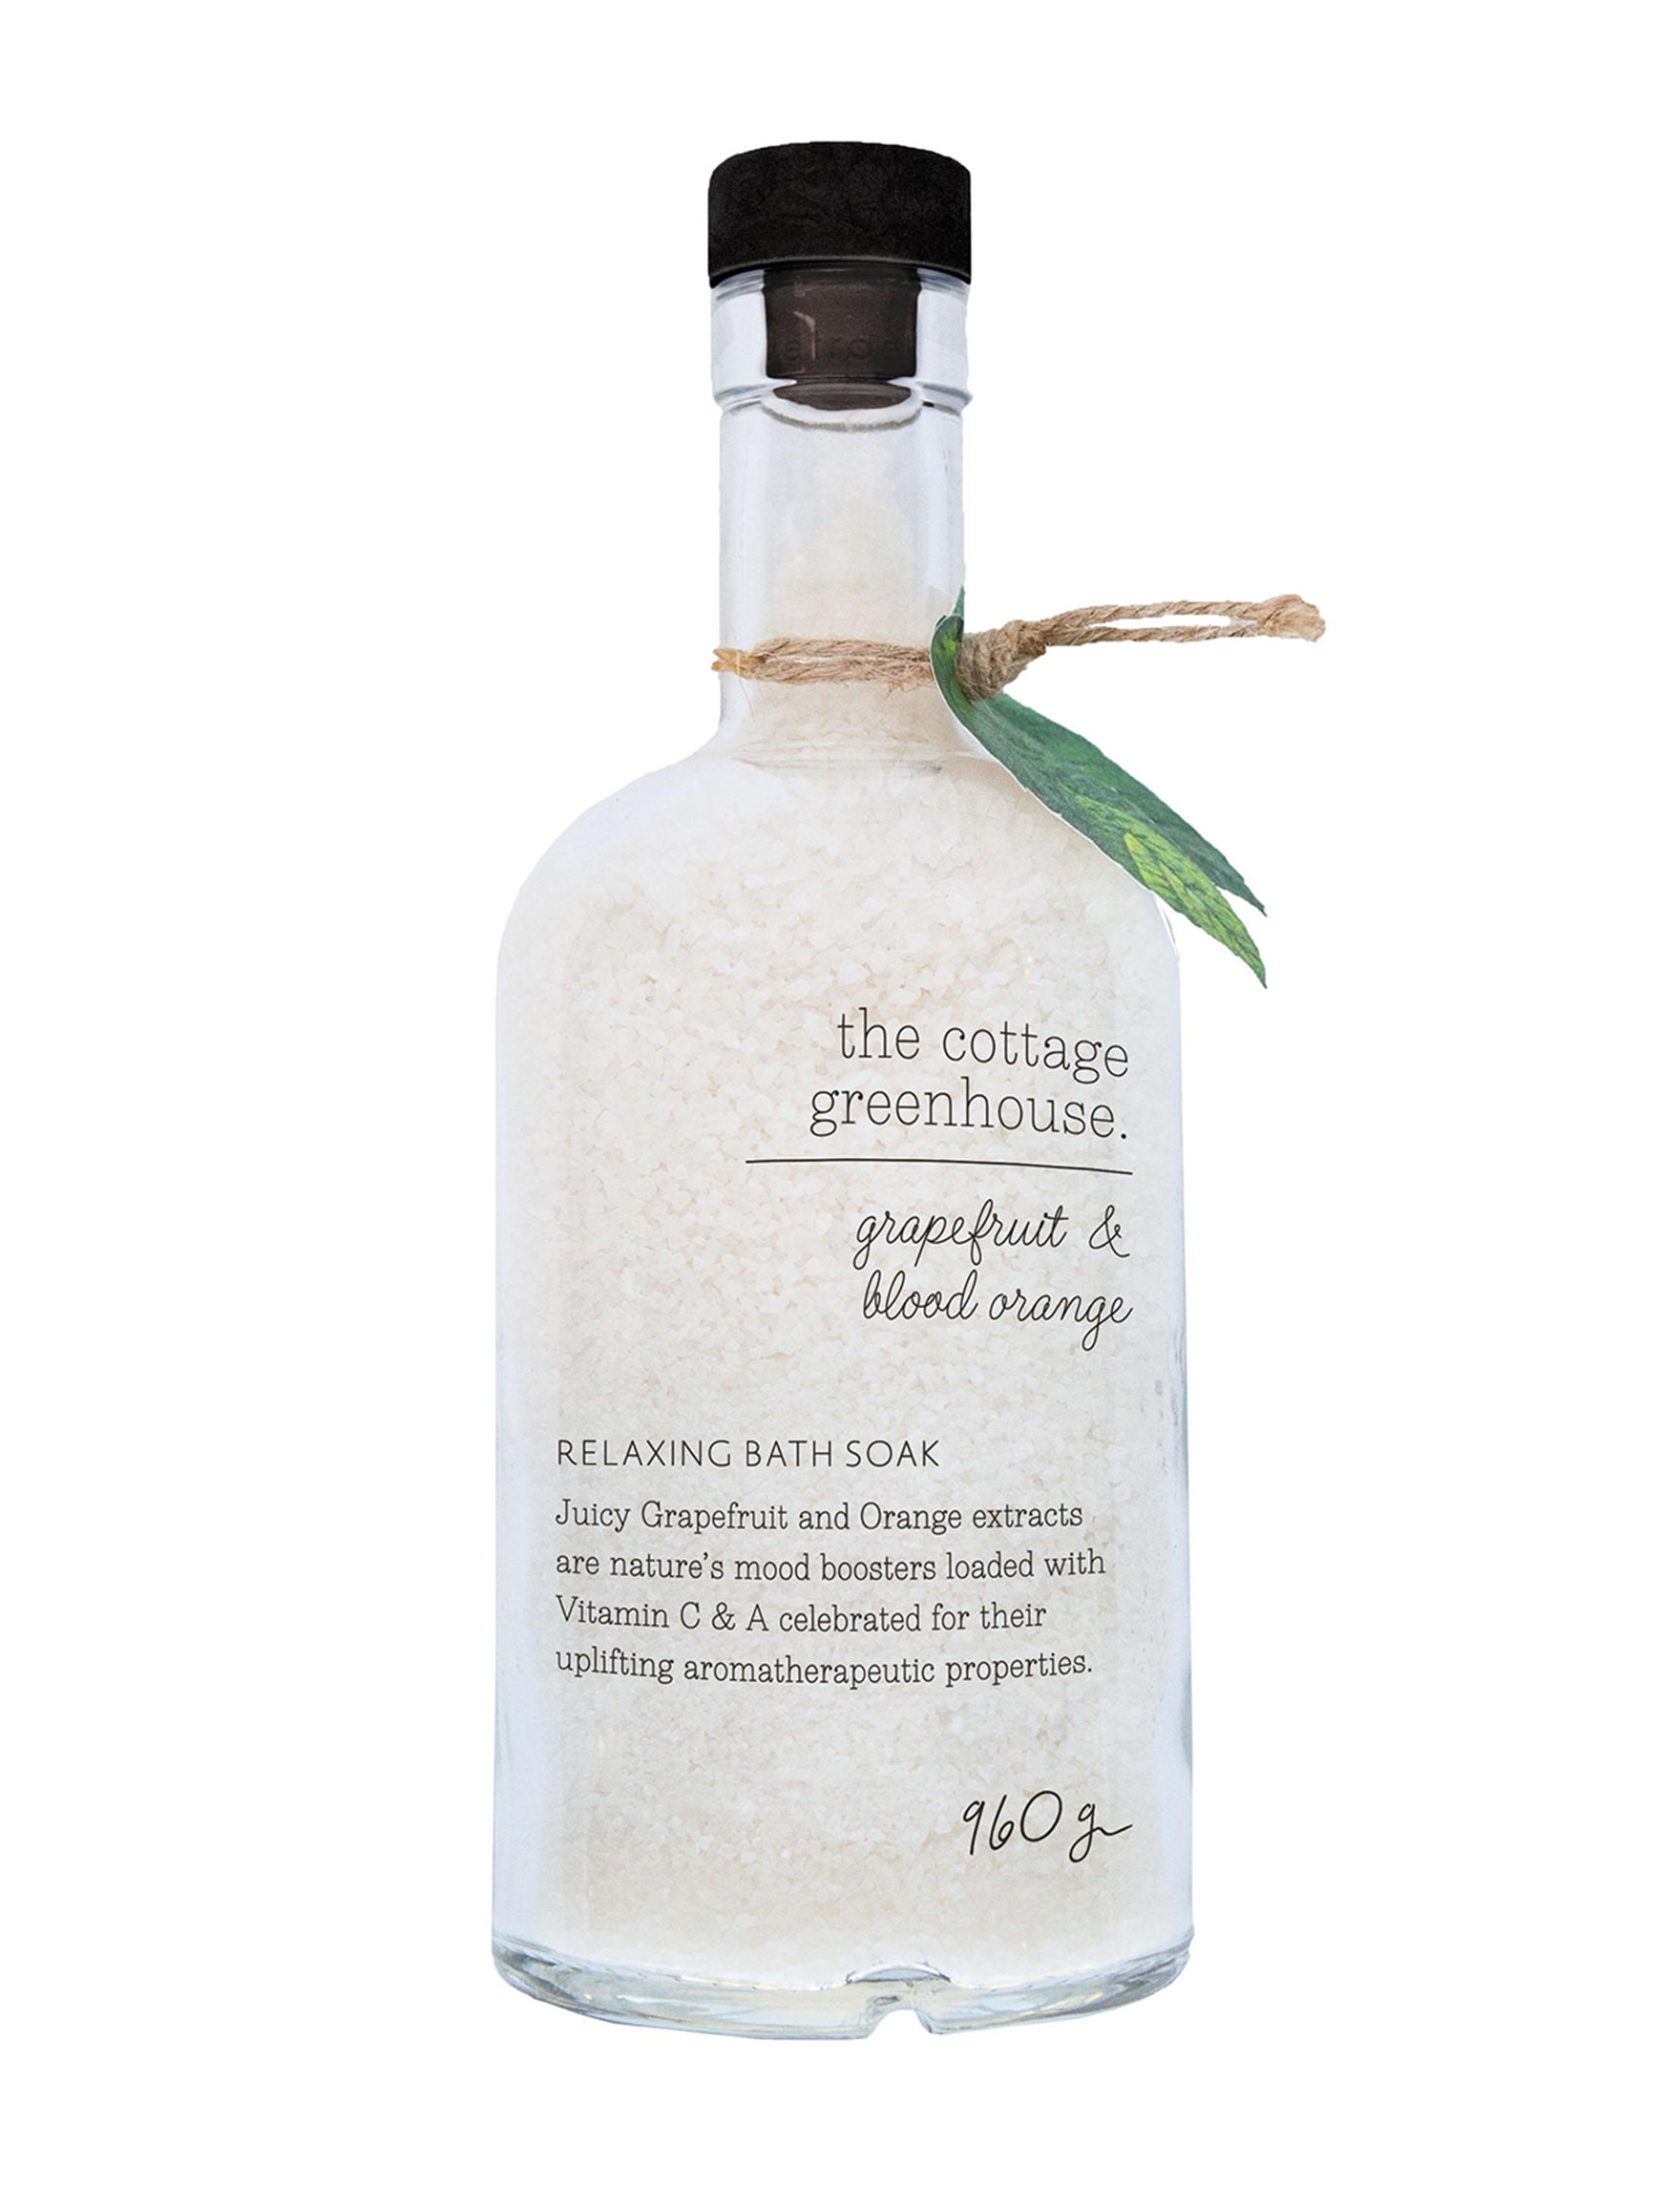 The Cottage Greenhouse  Bath Bombs, Salts & Oils